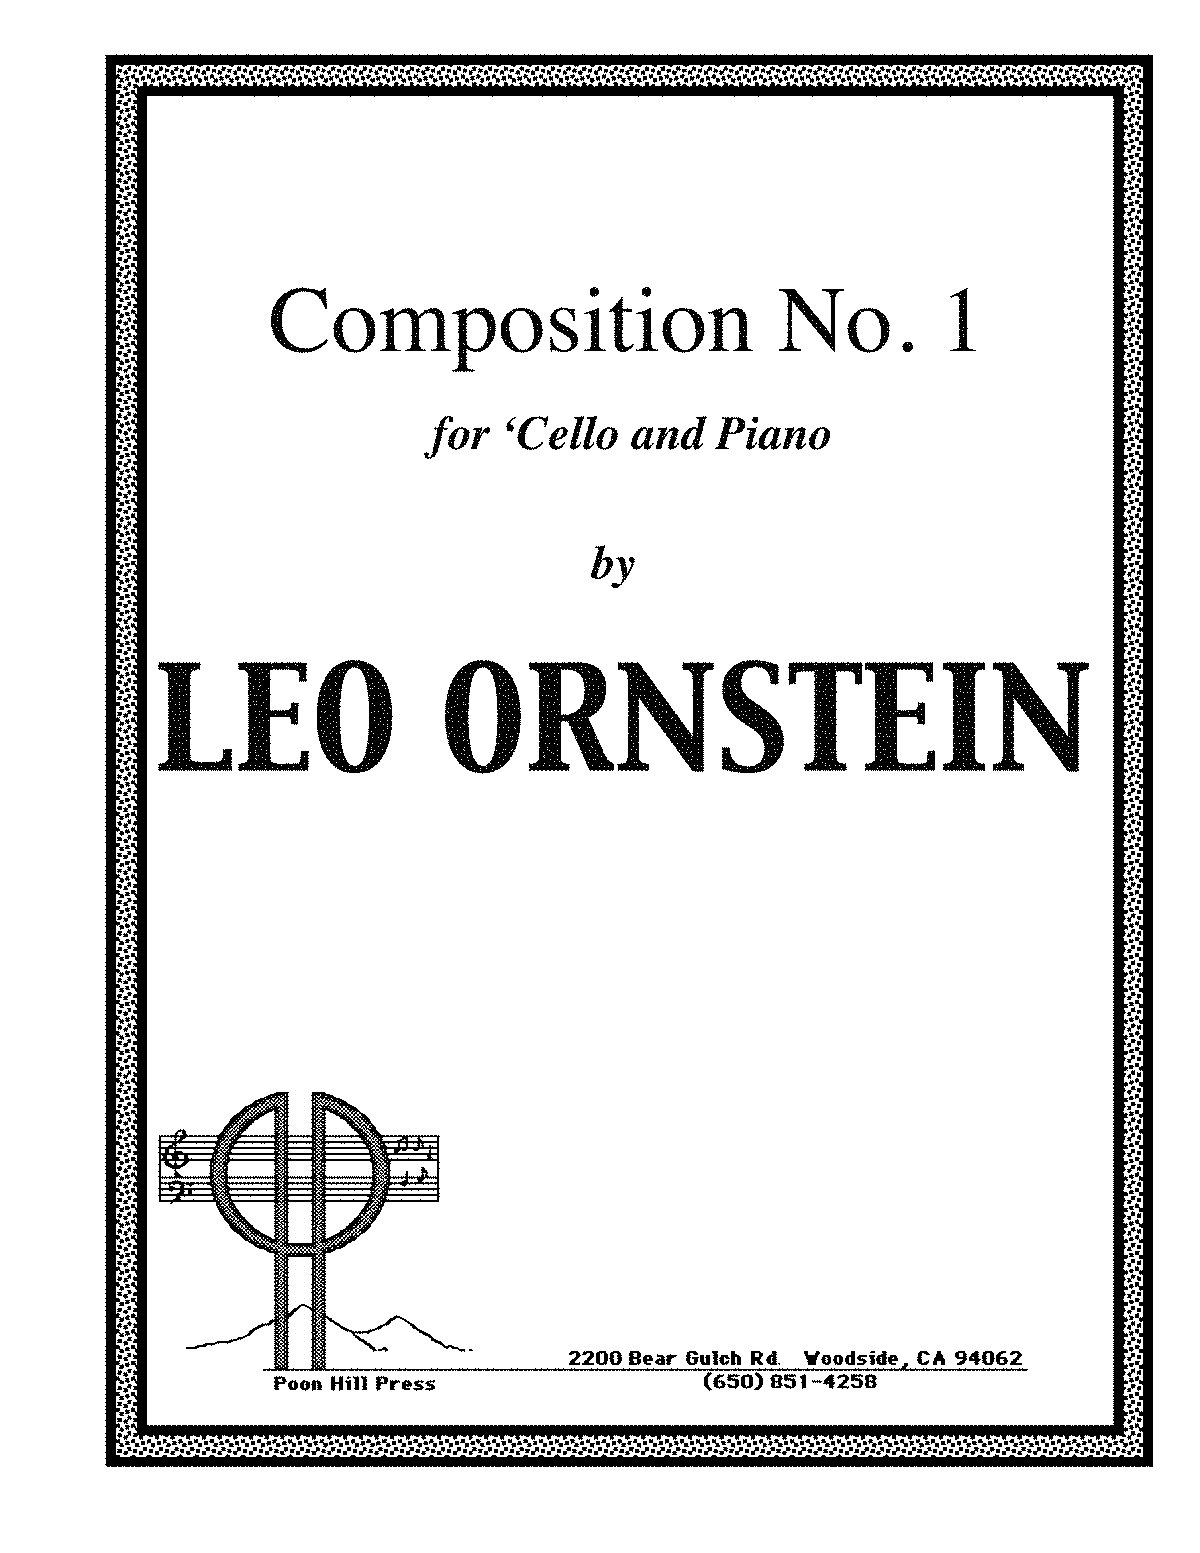 S619 - Cello Comp.1.pdf